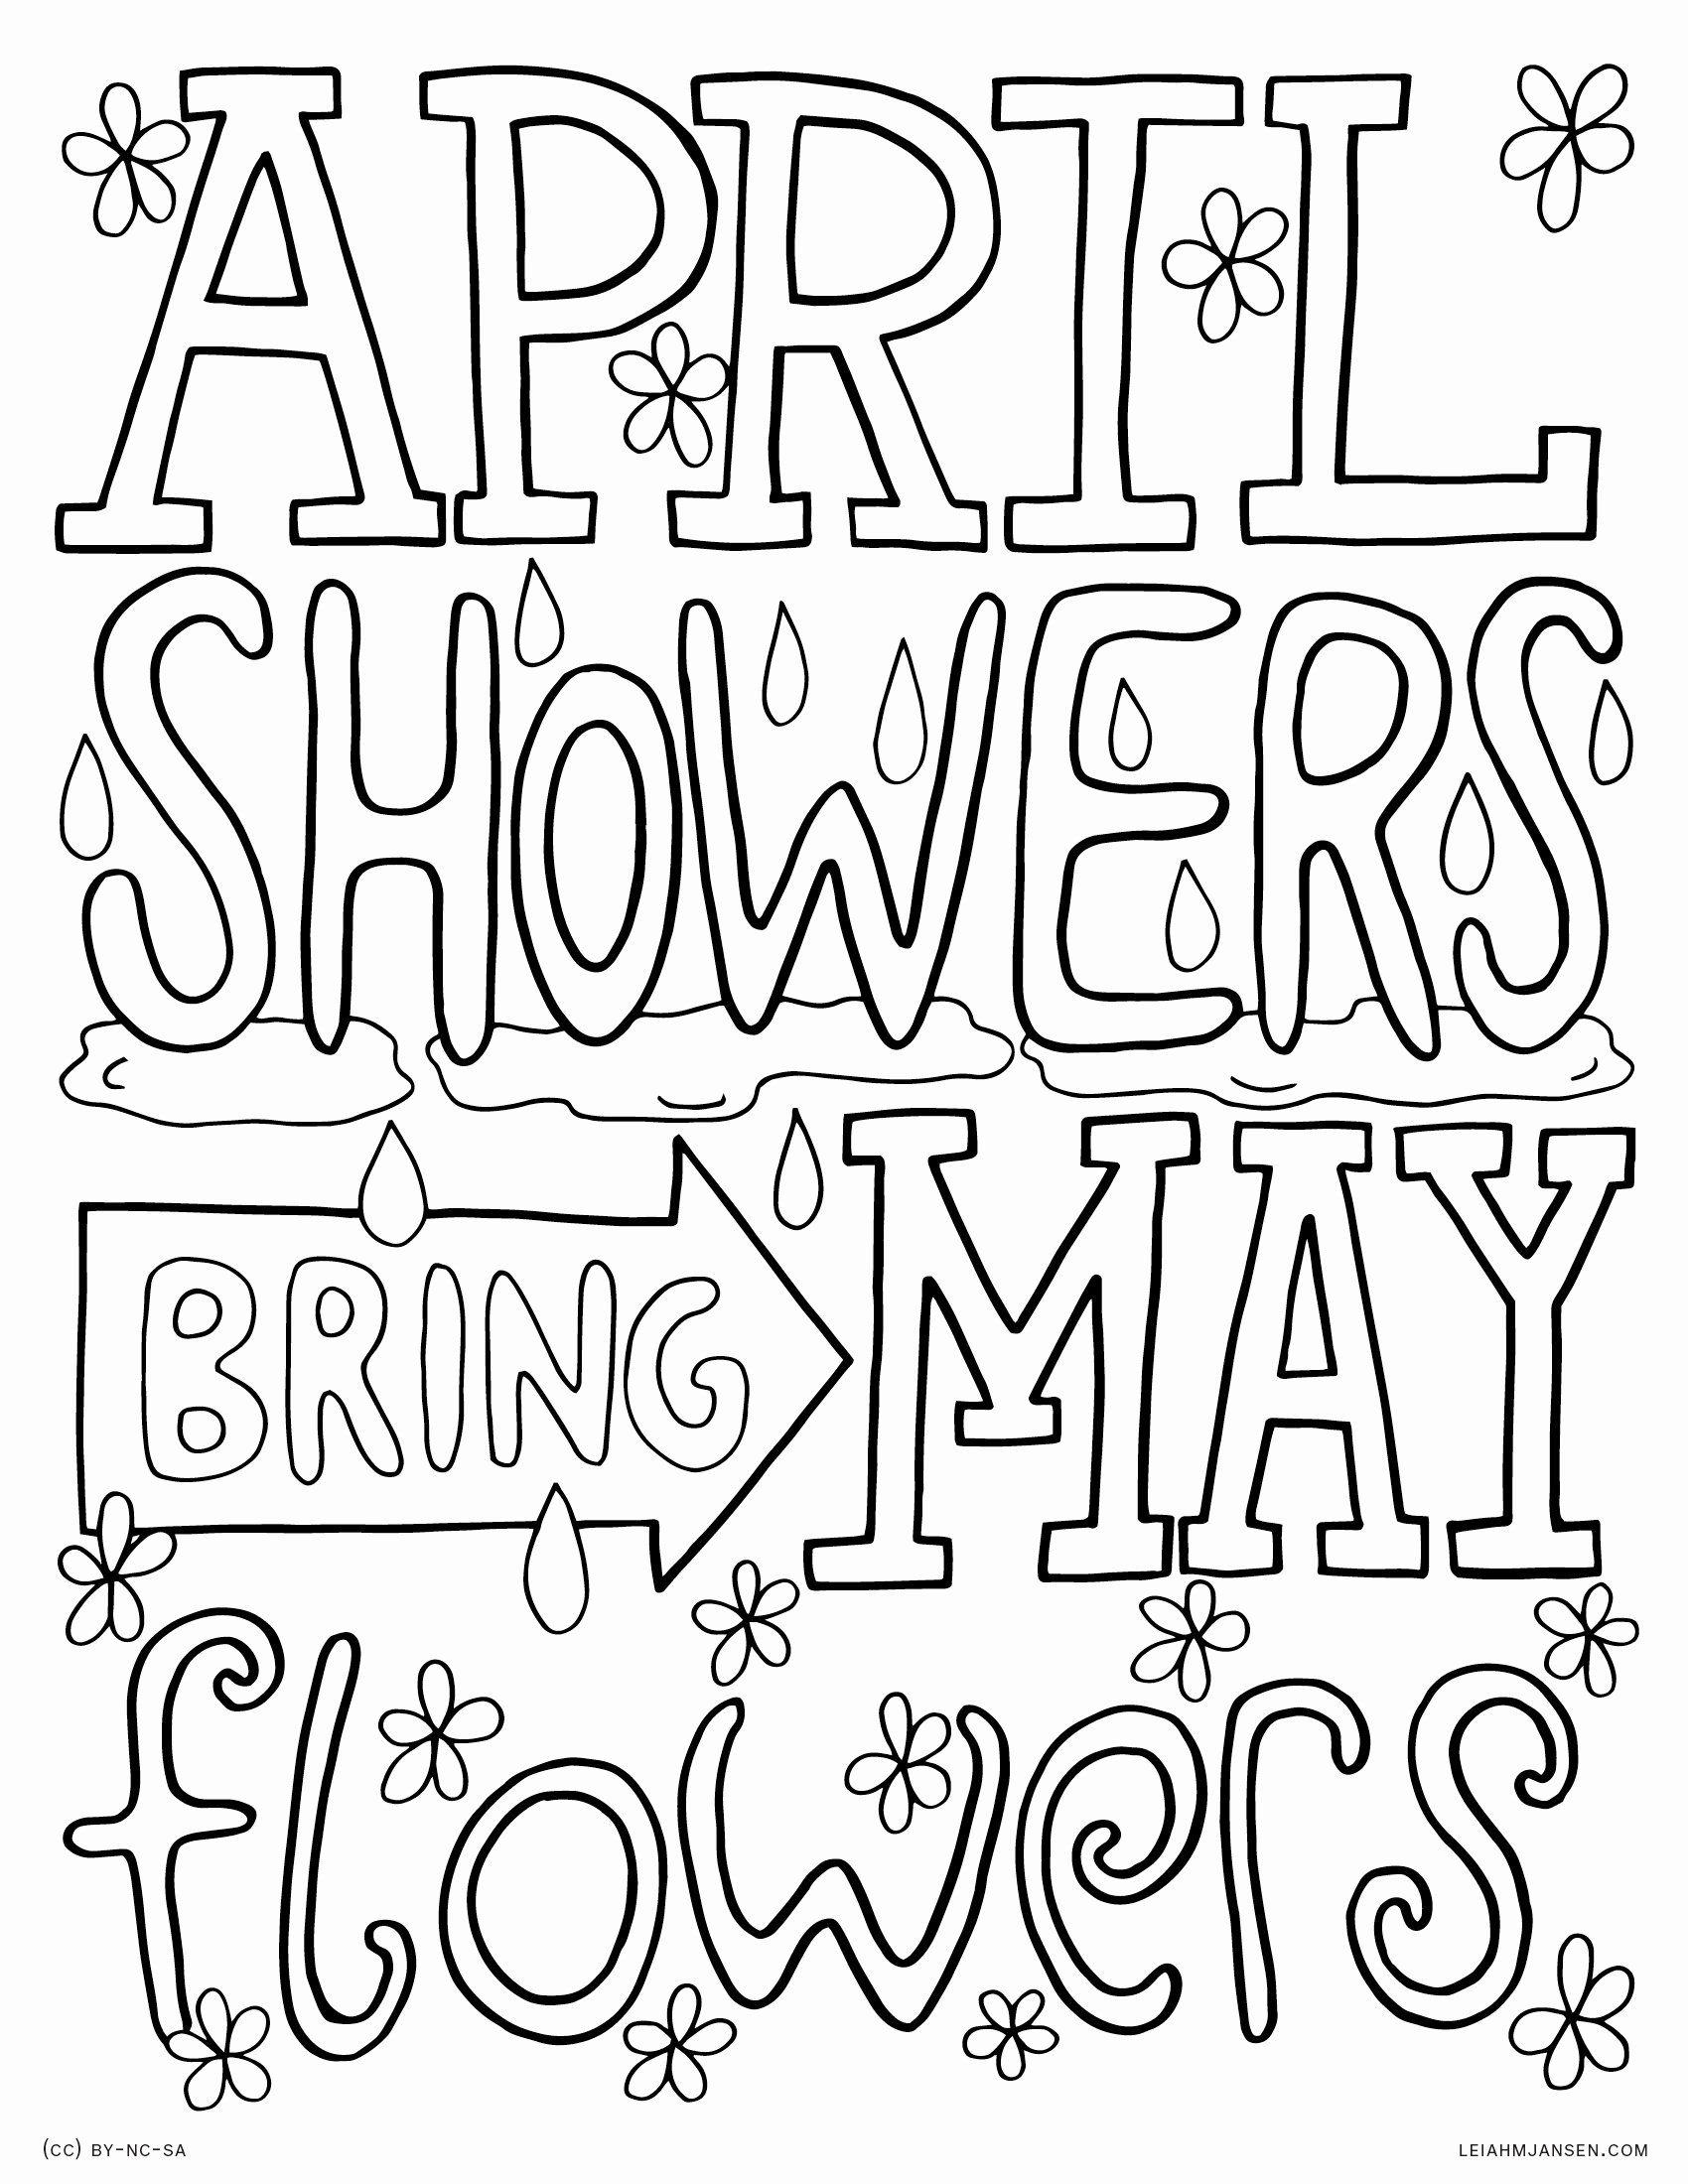 April Showers Bring May Flowers Coloring Page Fresh Coloring Pages